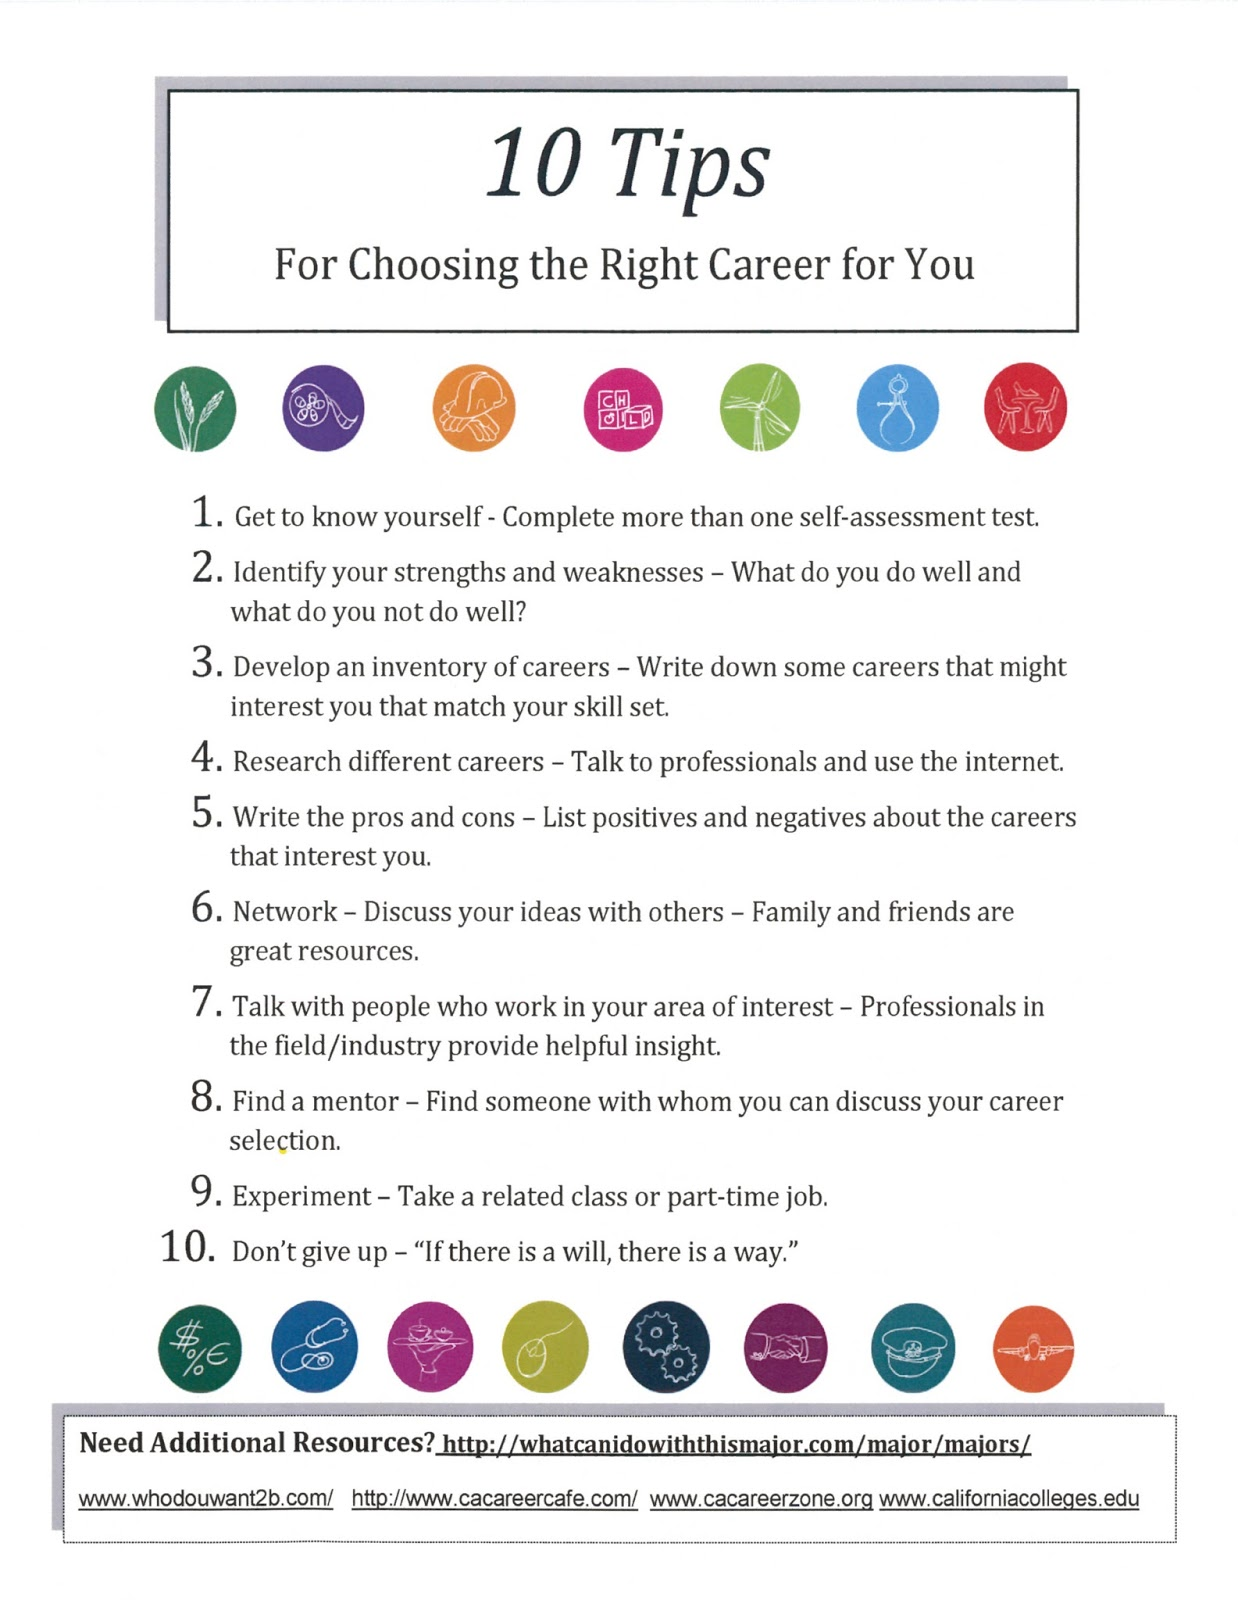 Sweetwater high counseling center 2016 career resources from southwestern college aiddatafo Choice Image